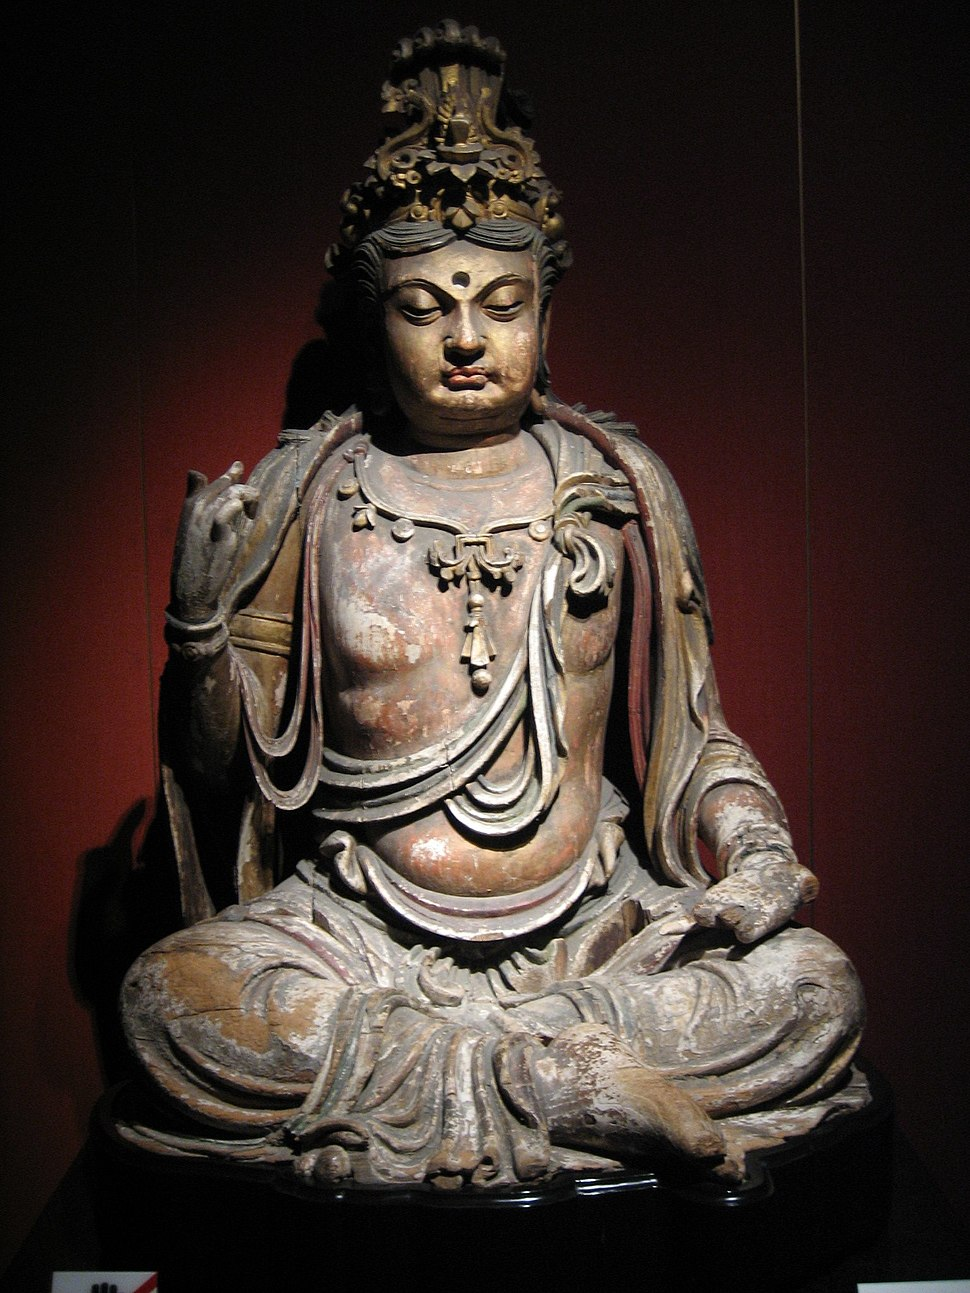 A wooden carving of a slightly overweight Buddha, sitting in a cross legged position. Clothing, including a shirt that covers the shoulders but leaves the chest exposed, and long, baggy pants, are carved into the statue.